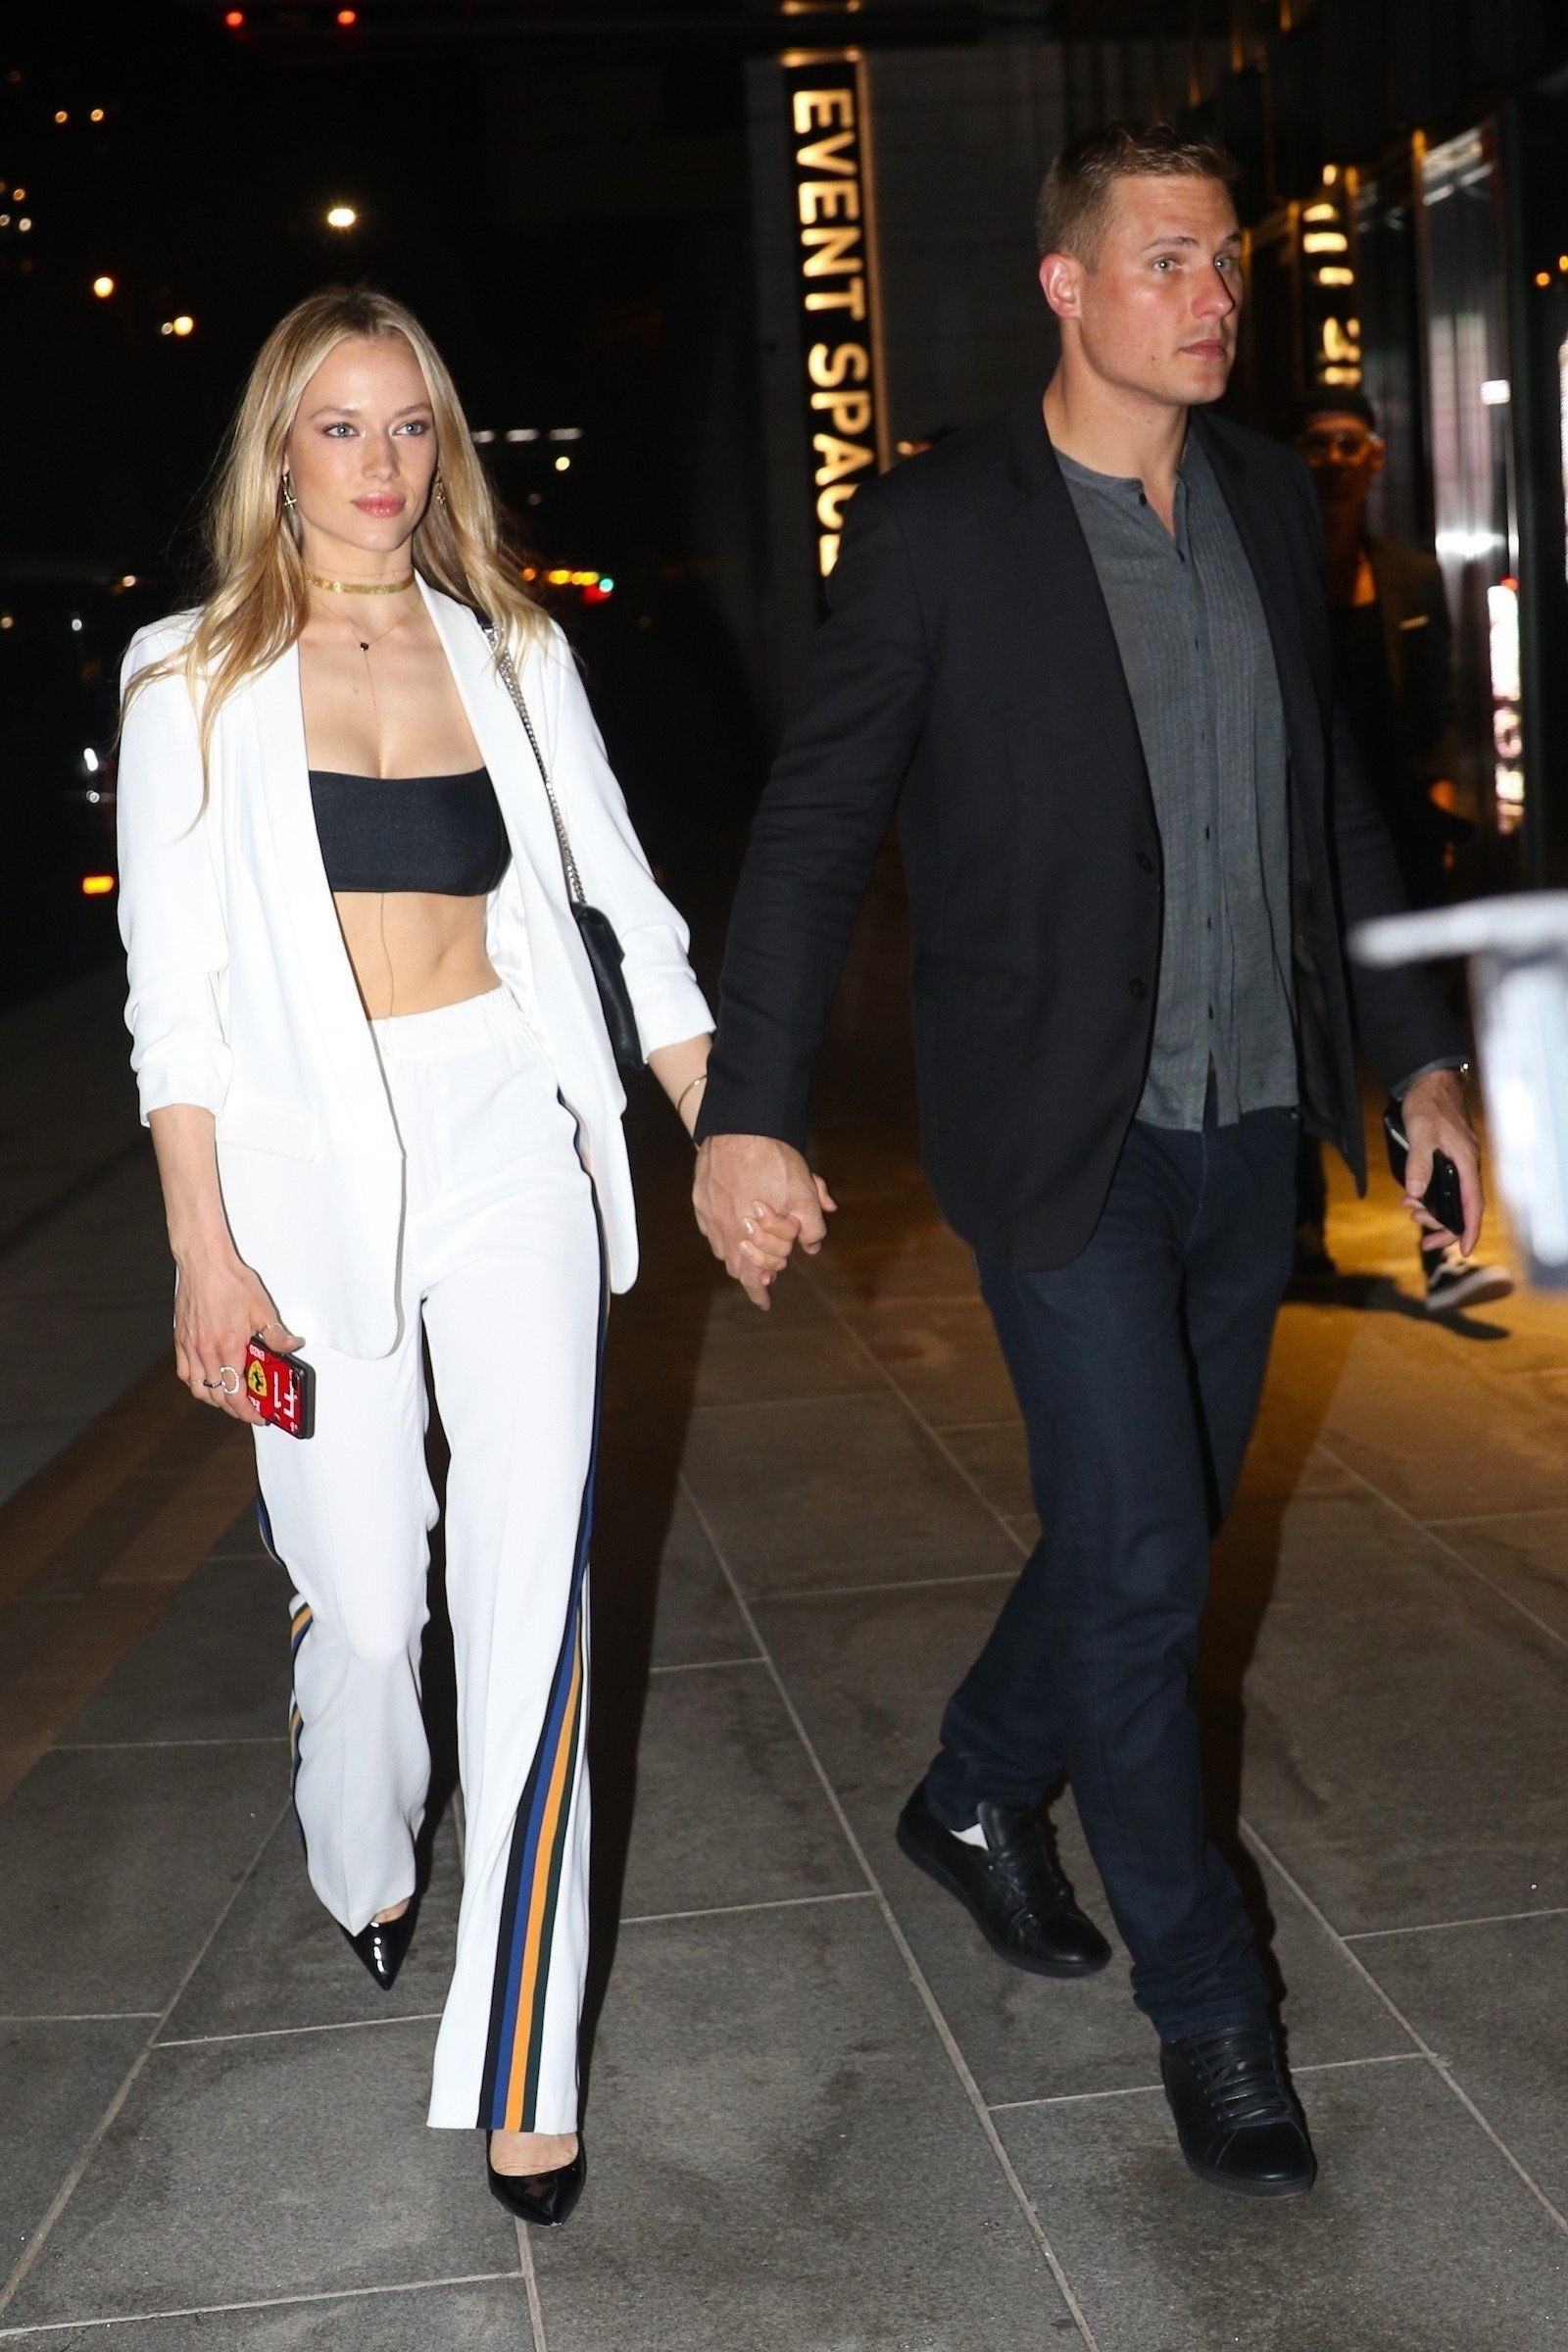 Brooklyn, NY  - Hannah Ferguson arrives with her date to the One Hotel to celebrate Gigi Hadid's 23rd birthday this evening in Brooklyn. The model opted for a more casual look in a white, tracksuit-inspired outfit and black crop top.  Pictured: Hannah Ferguson  BACKGRID USA 23 APRIL 2018, Image: 369482766, License: Rights-managed, Restrictions: , Model Release: no, Credit line: Profimedia, AKM-GSI